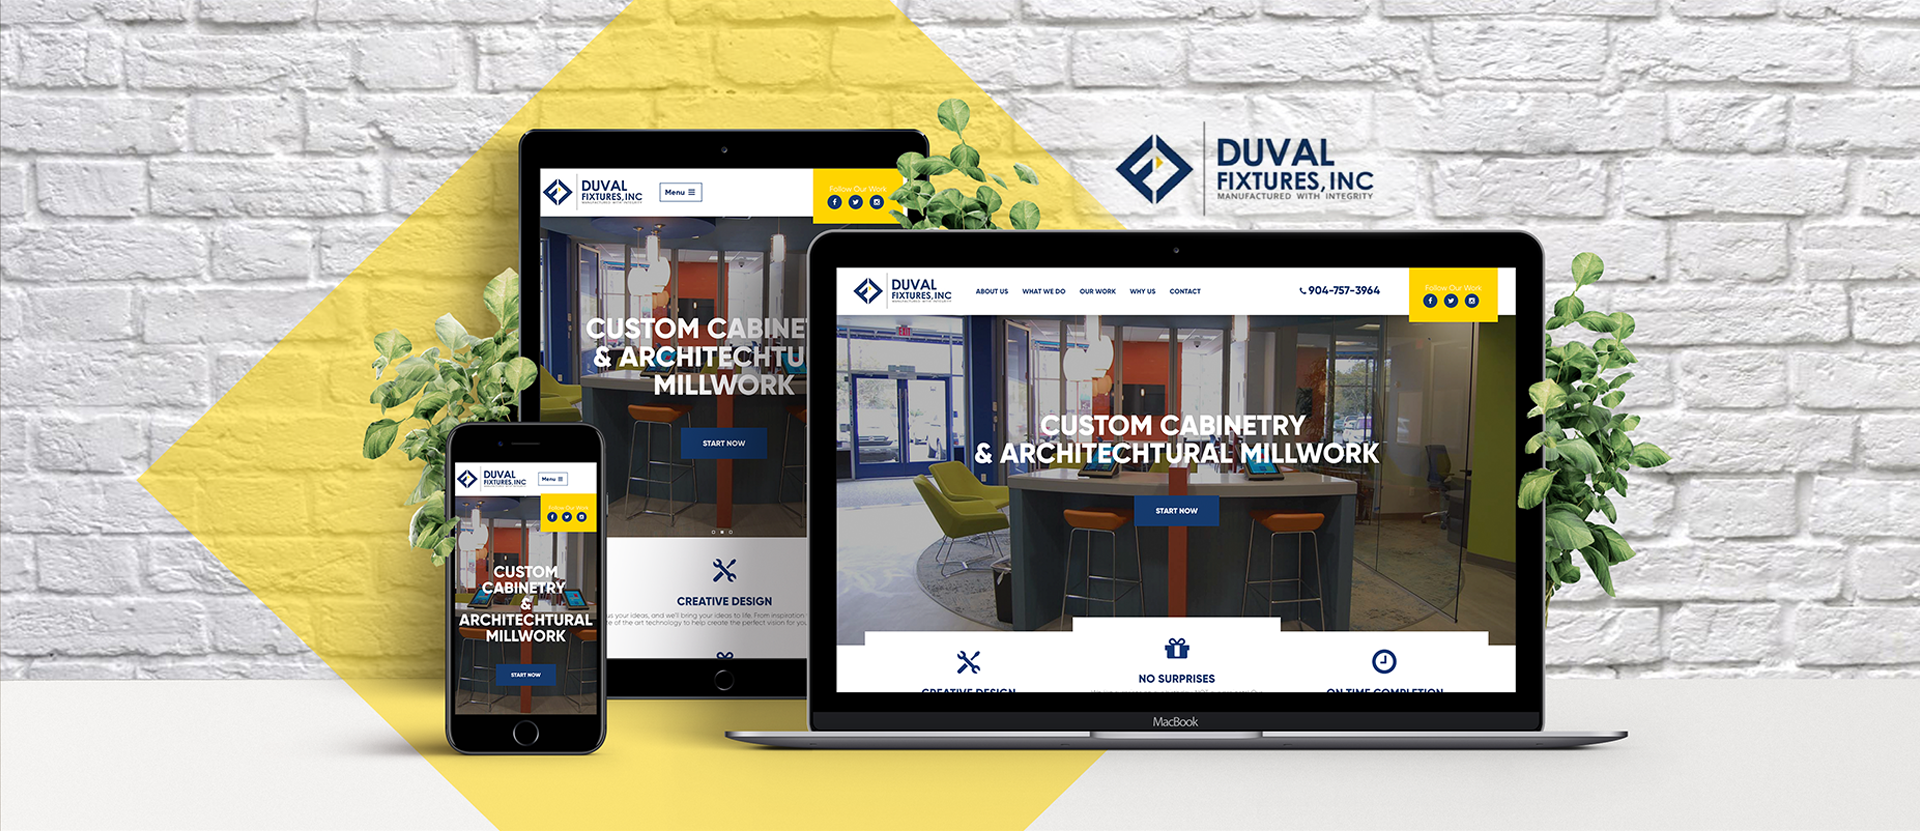 Duval Fixtures Marketing Portfolio